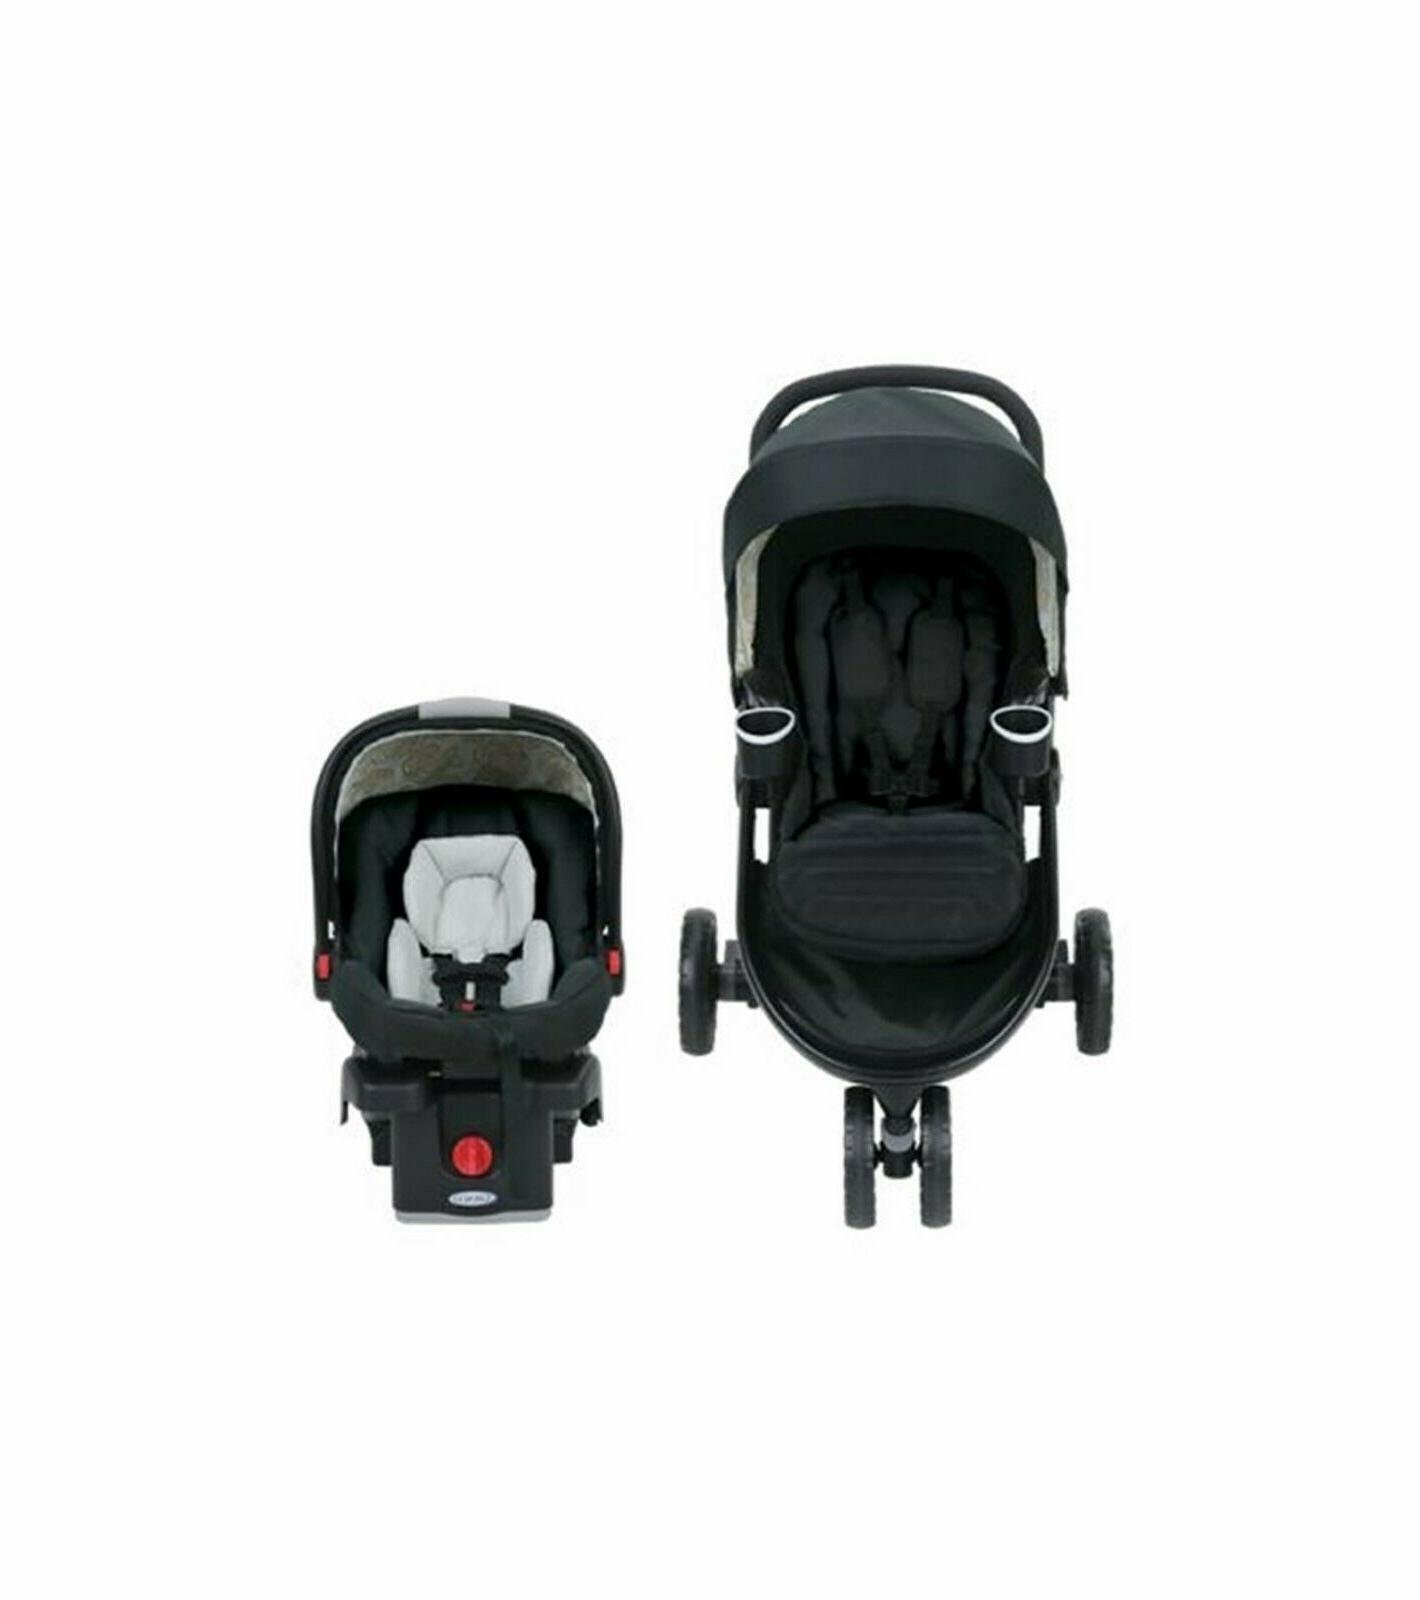 Graco Modes 3 Click Connect Stroller with Seat